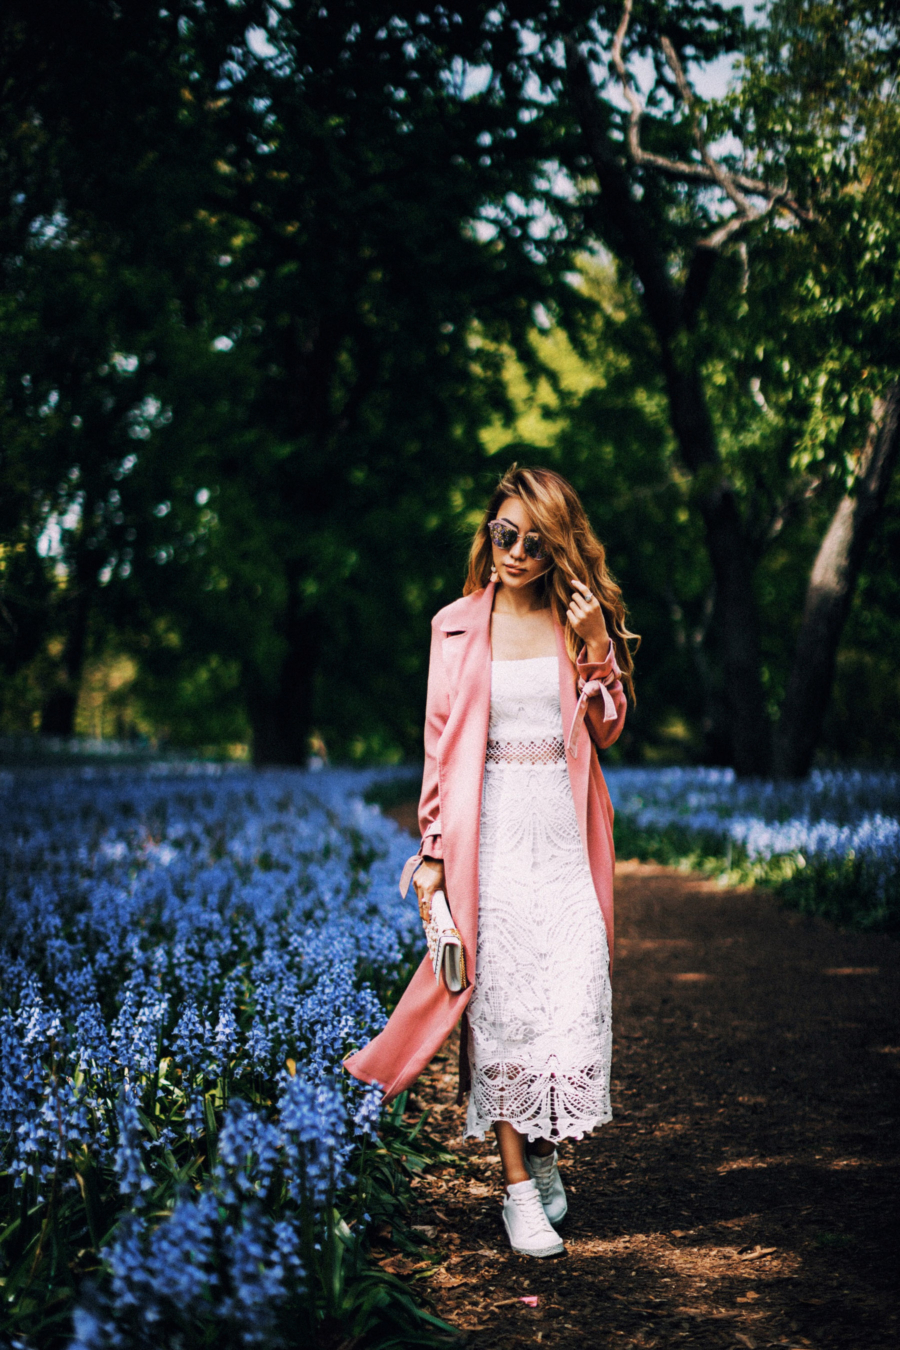 River Island Pink Trench White Dress - 9 Fresh Ways To Style Your Favorite Trench Coat For Any Occasion This Spring // NotJessFashion.com